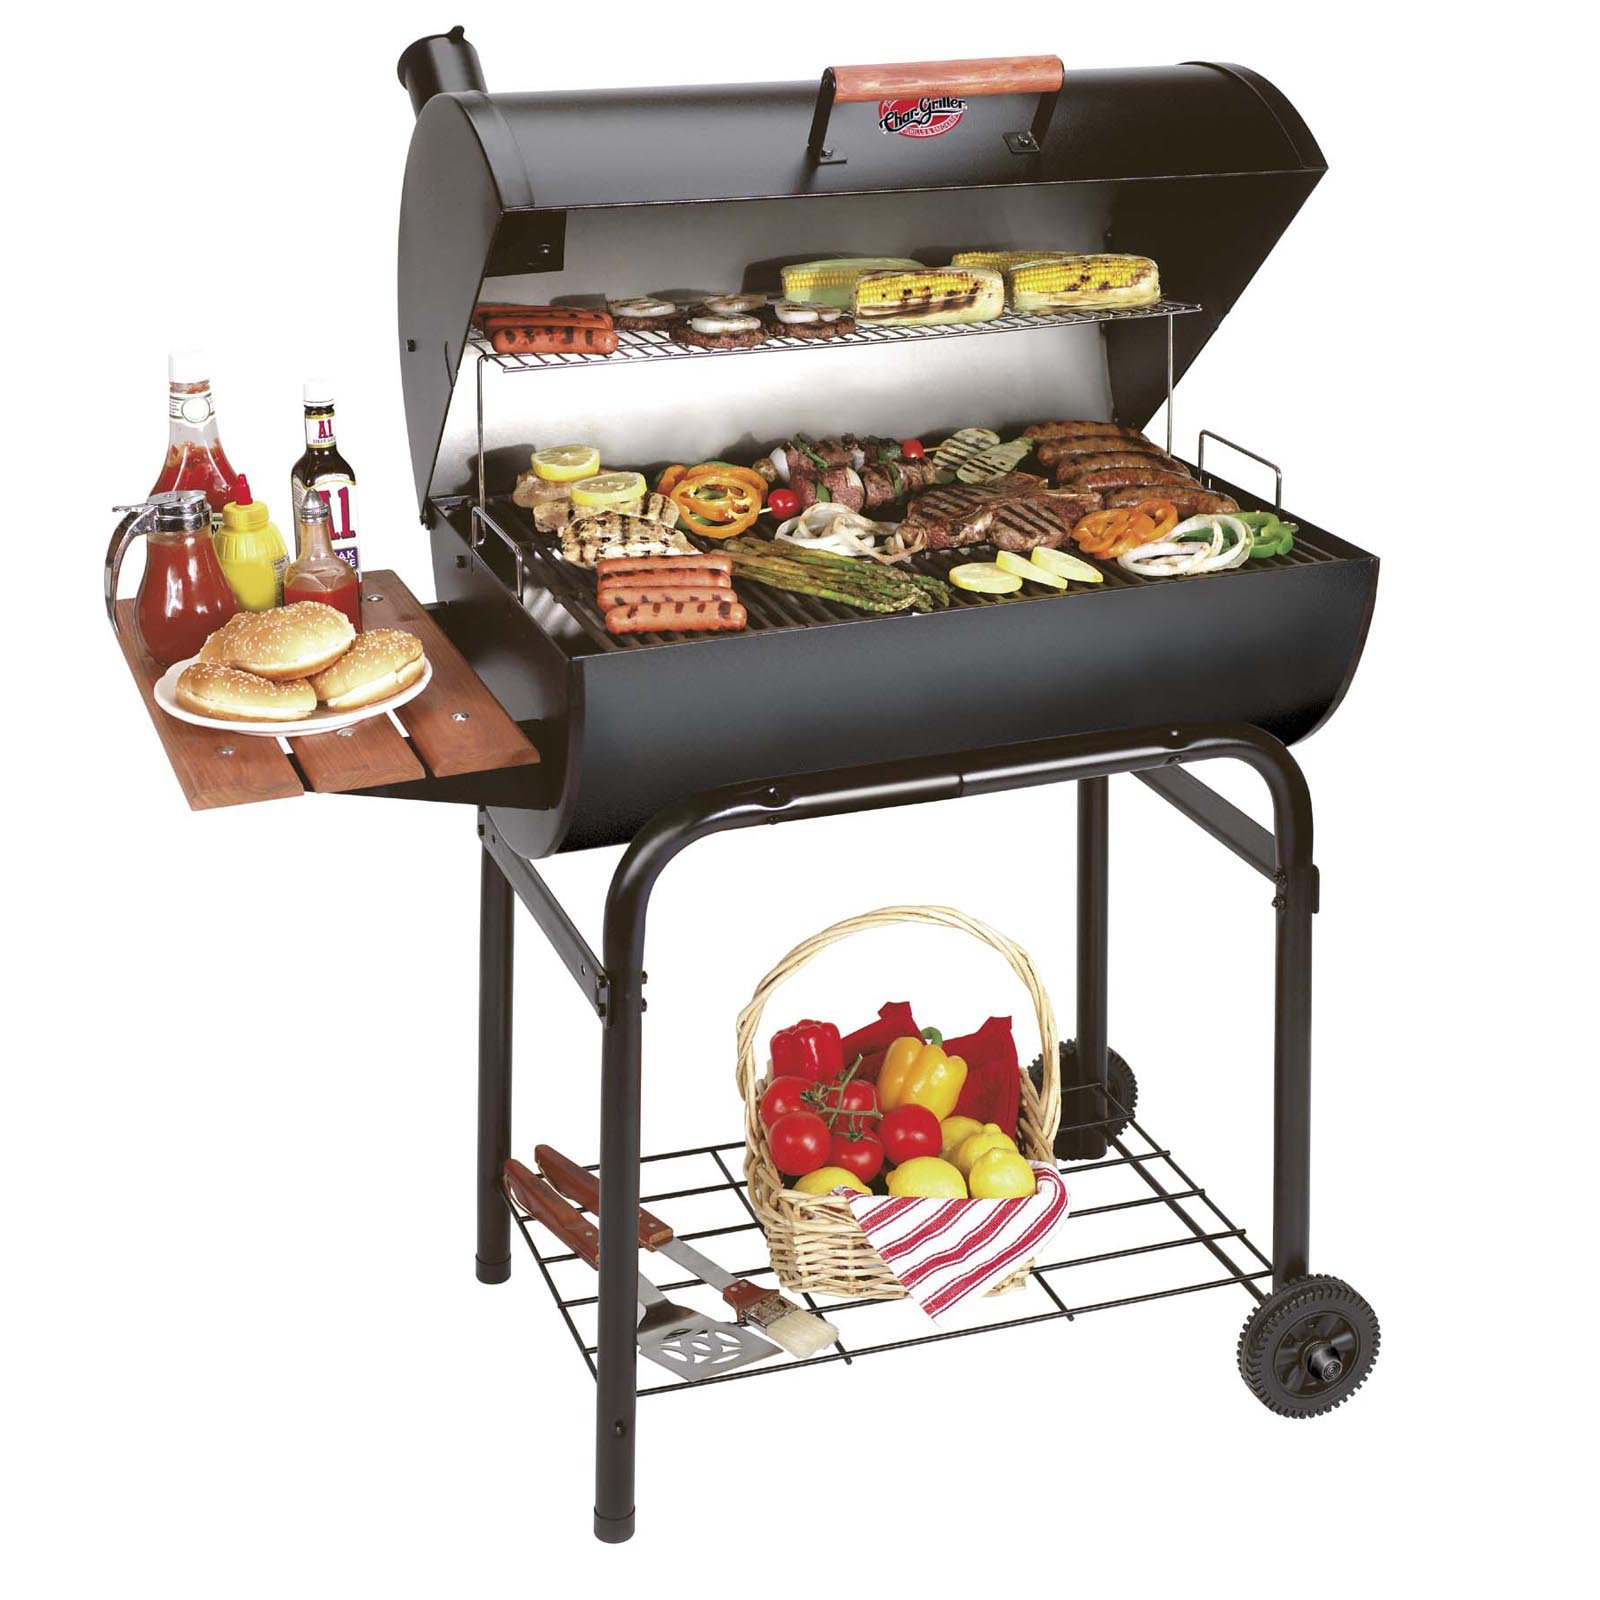 Elegant Char Griller Pro Deluxe Charcoal Grill